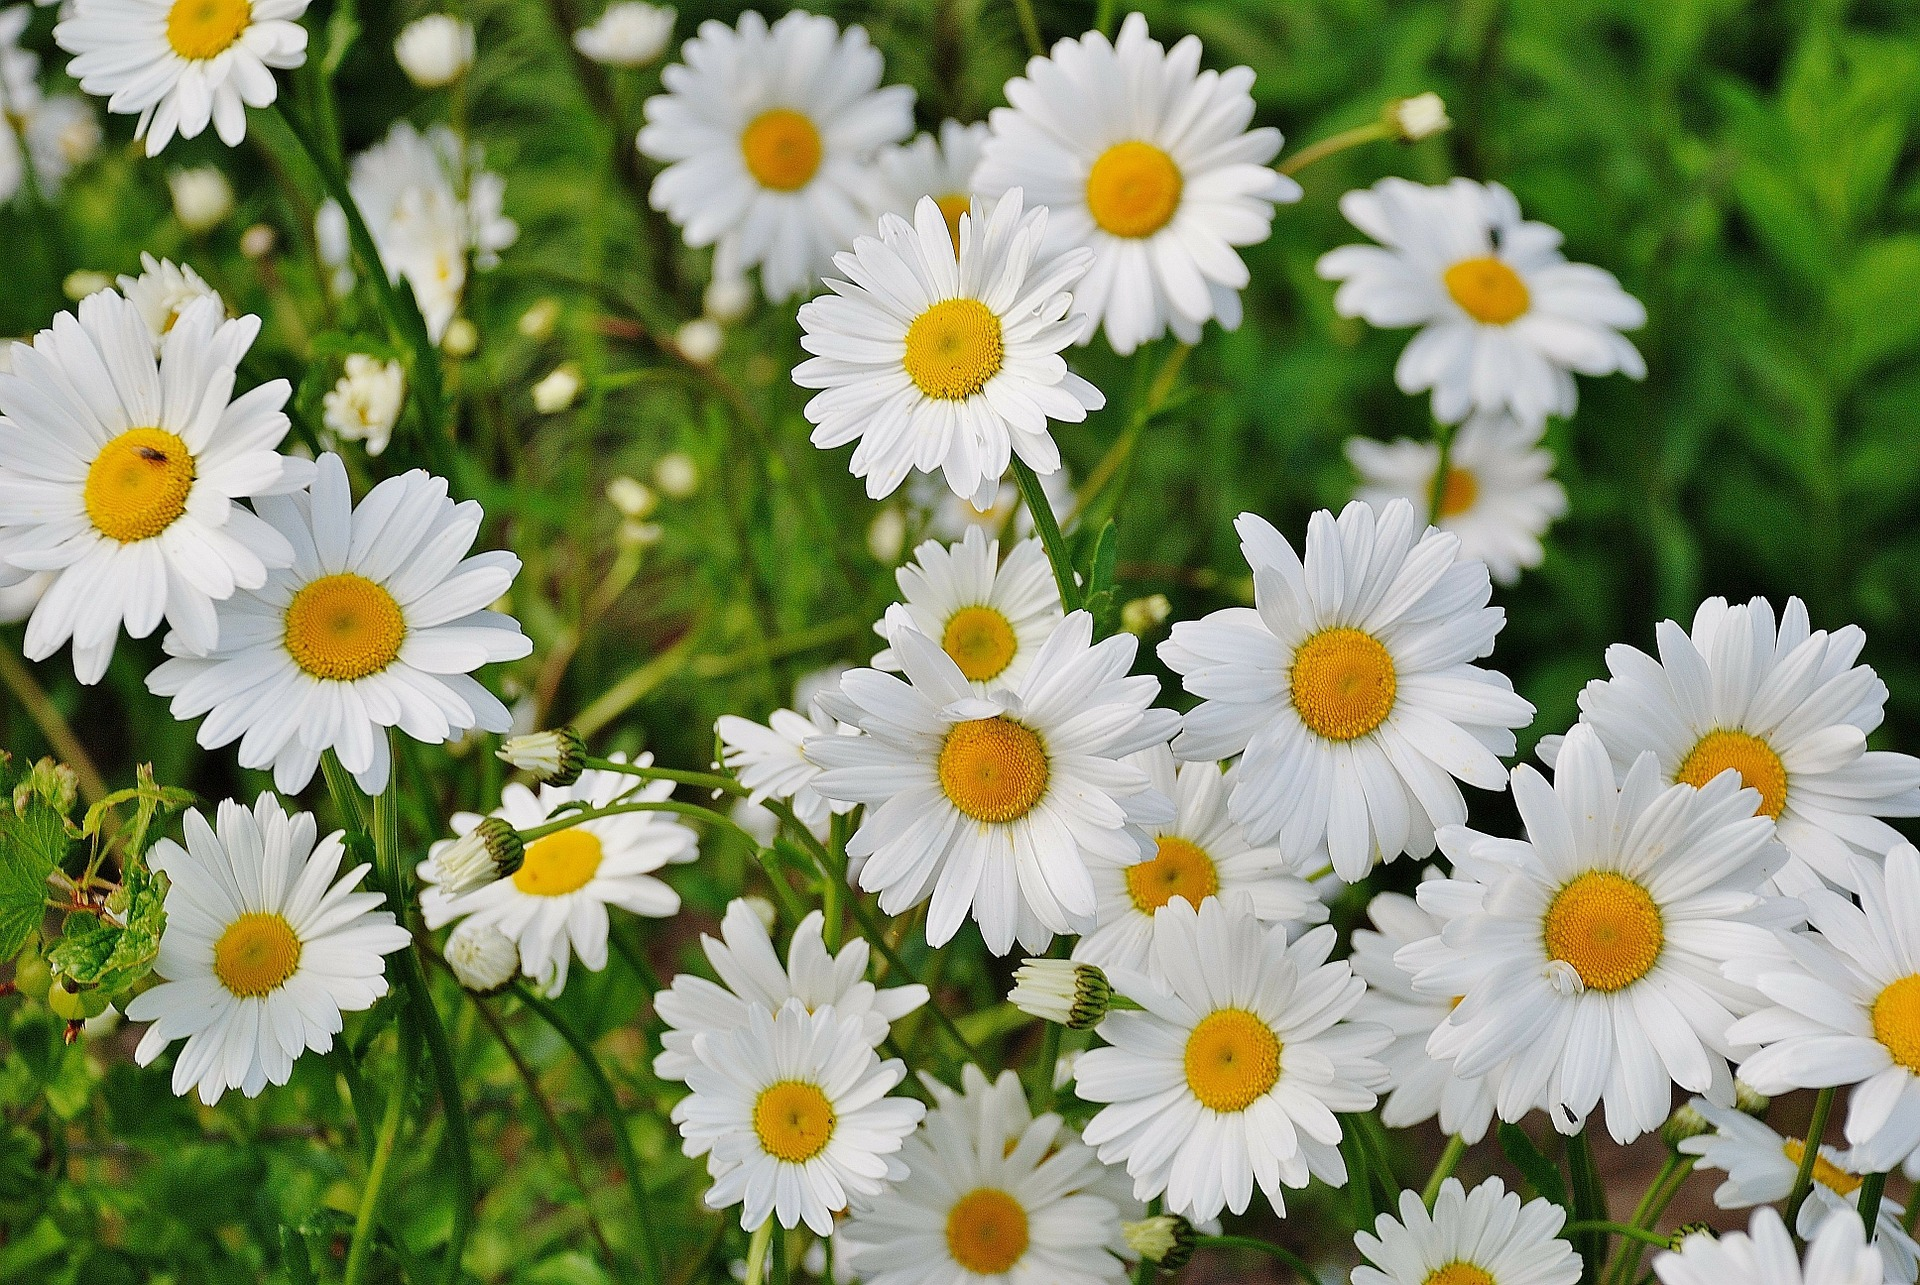 Shasta daisies how to plant grow and care for daisy flowers the shasta daisies how to plant grow and care for daisy flowers the old farmers almanac izmirmasajfo